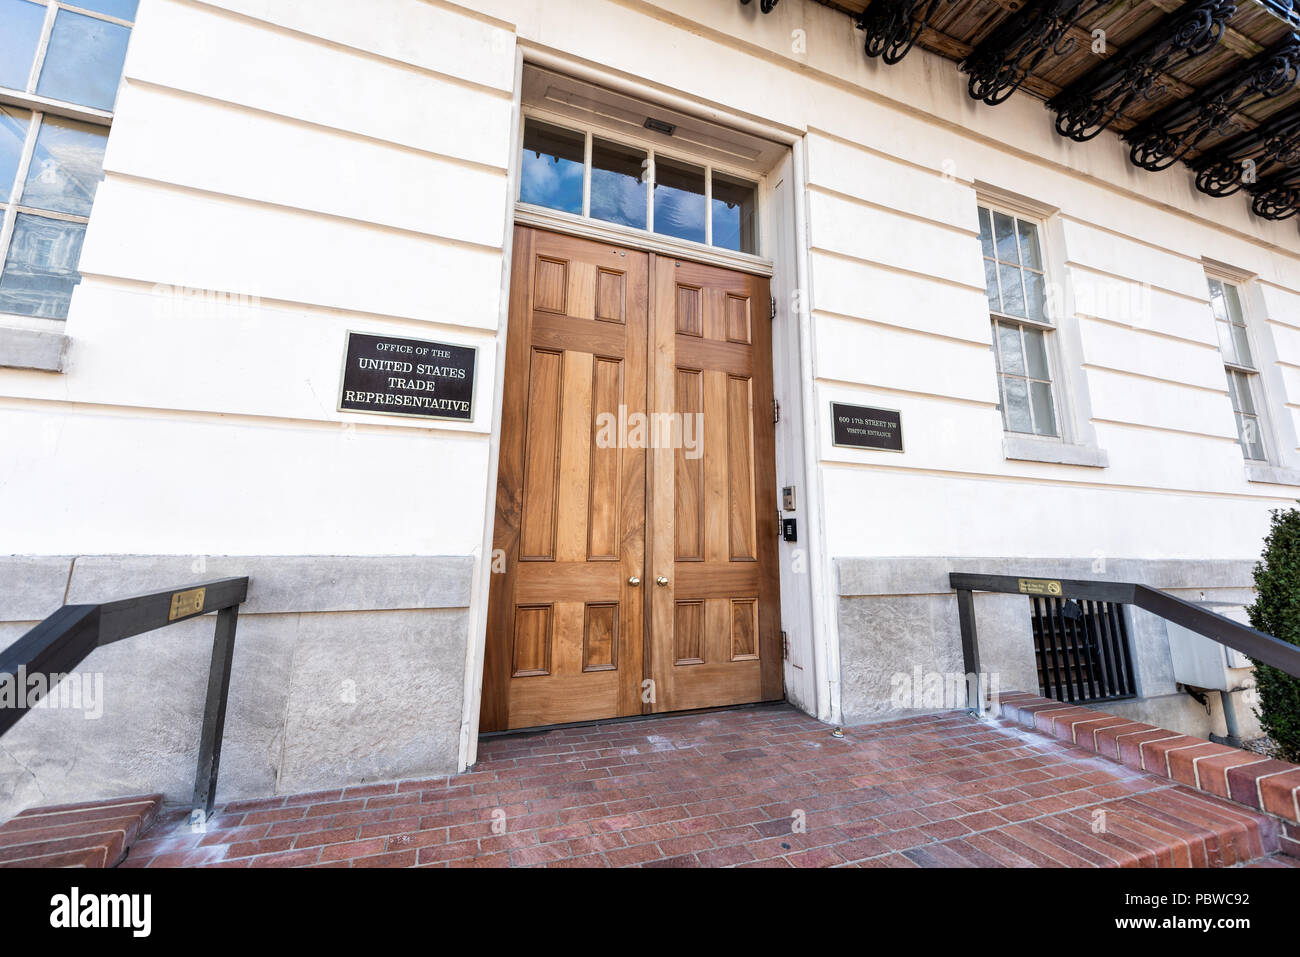 Washington DC, USA - March 9, 2018: United States Trade Representative visitor entrance wooden door and sign for office - Stock Image